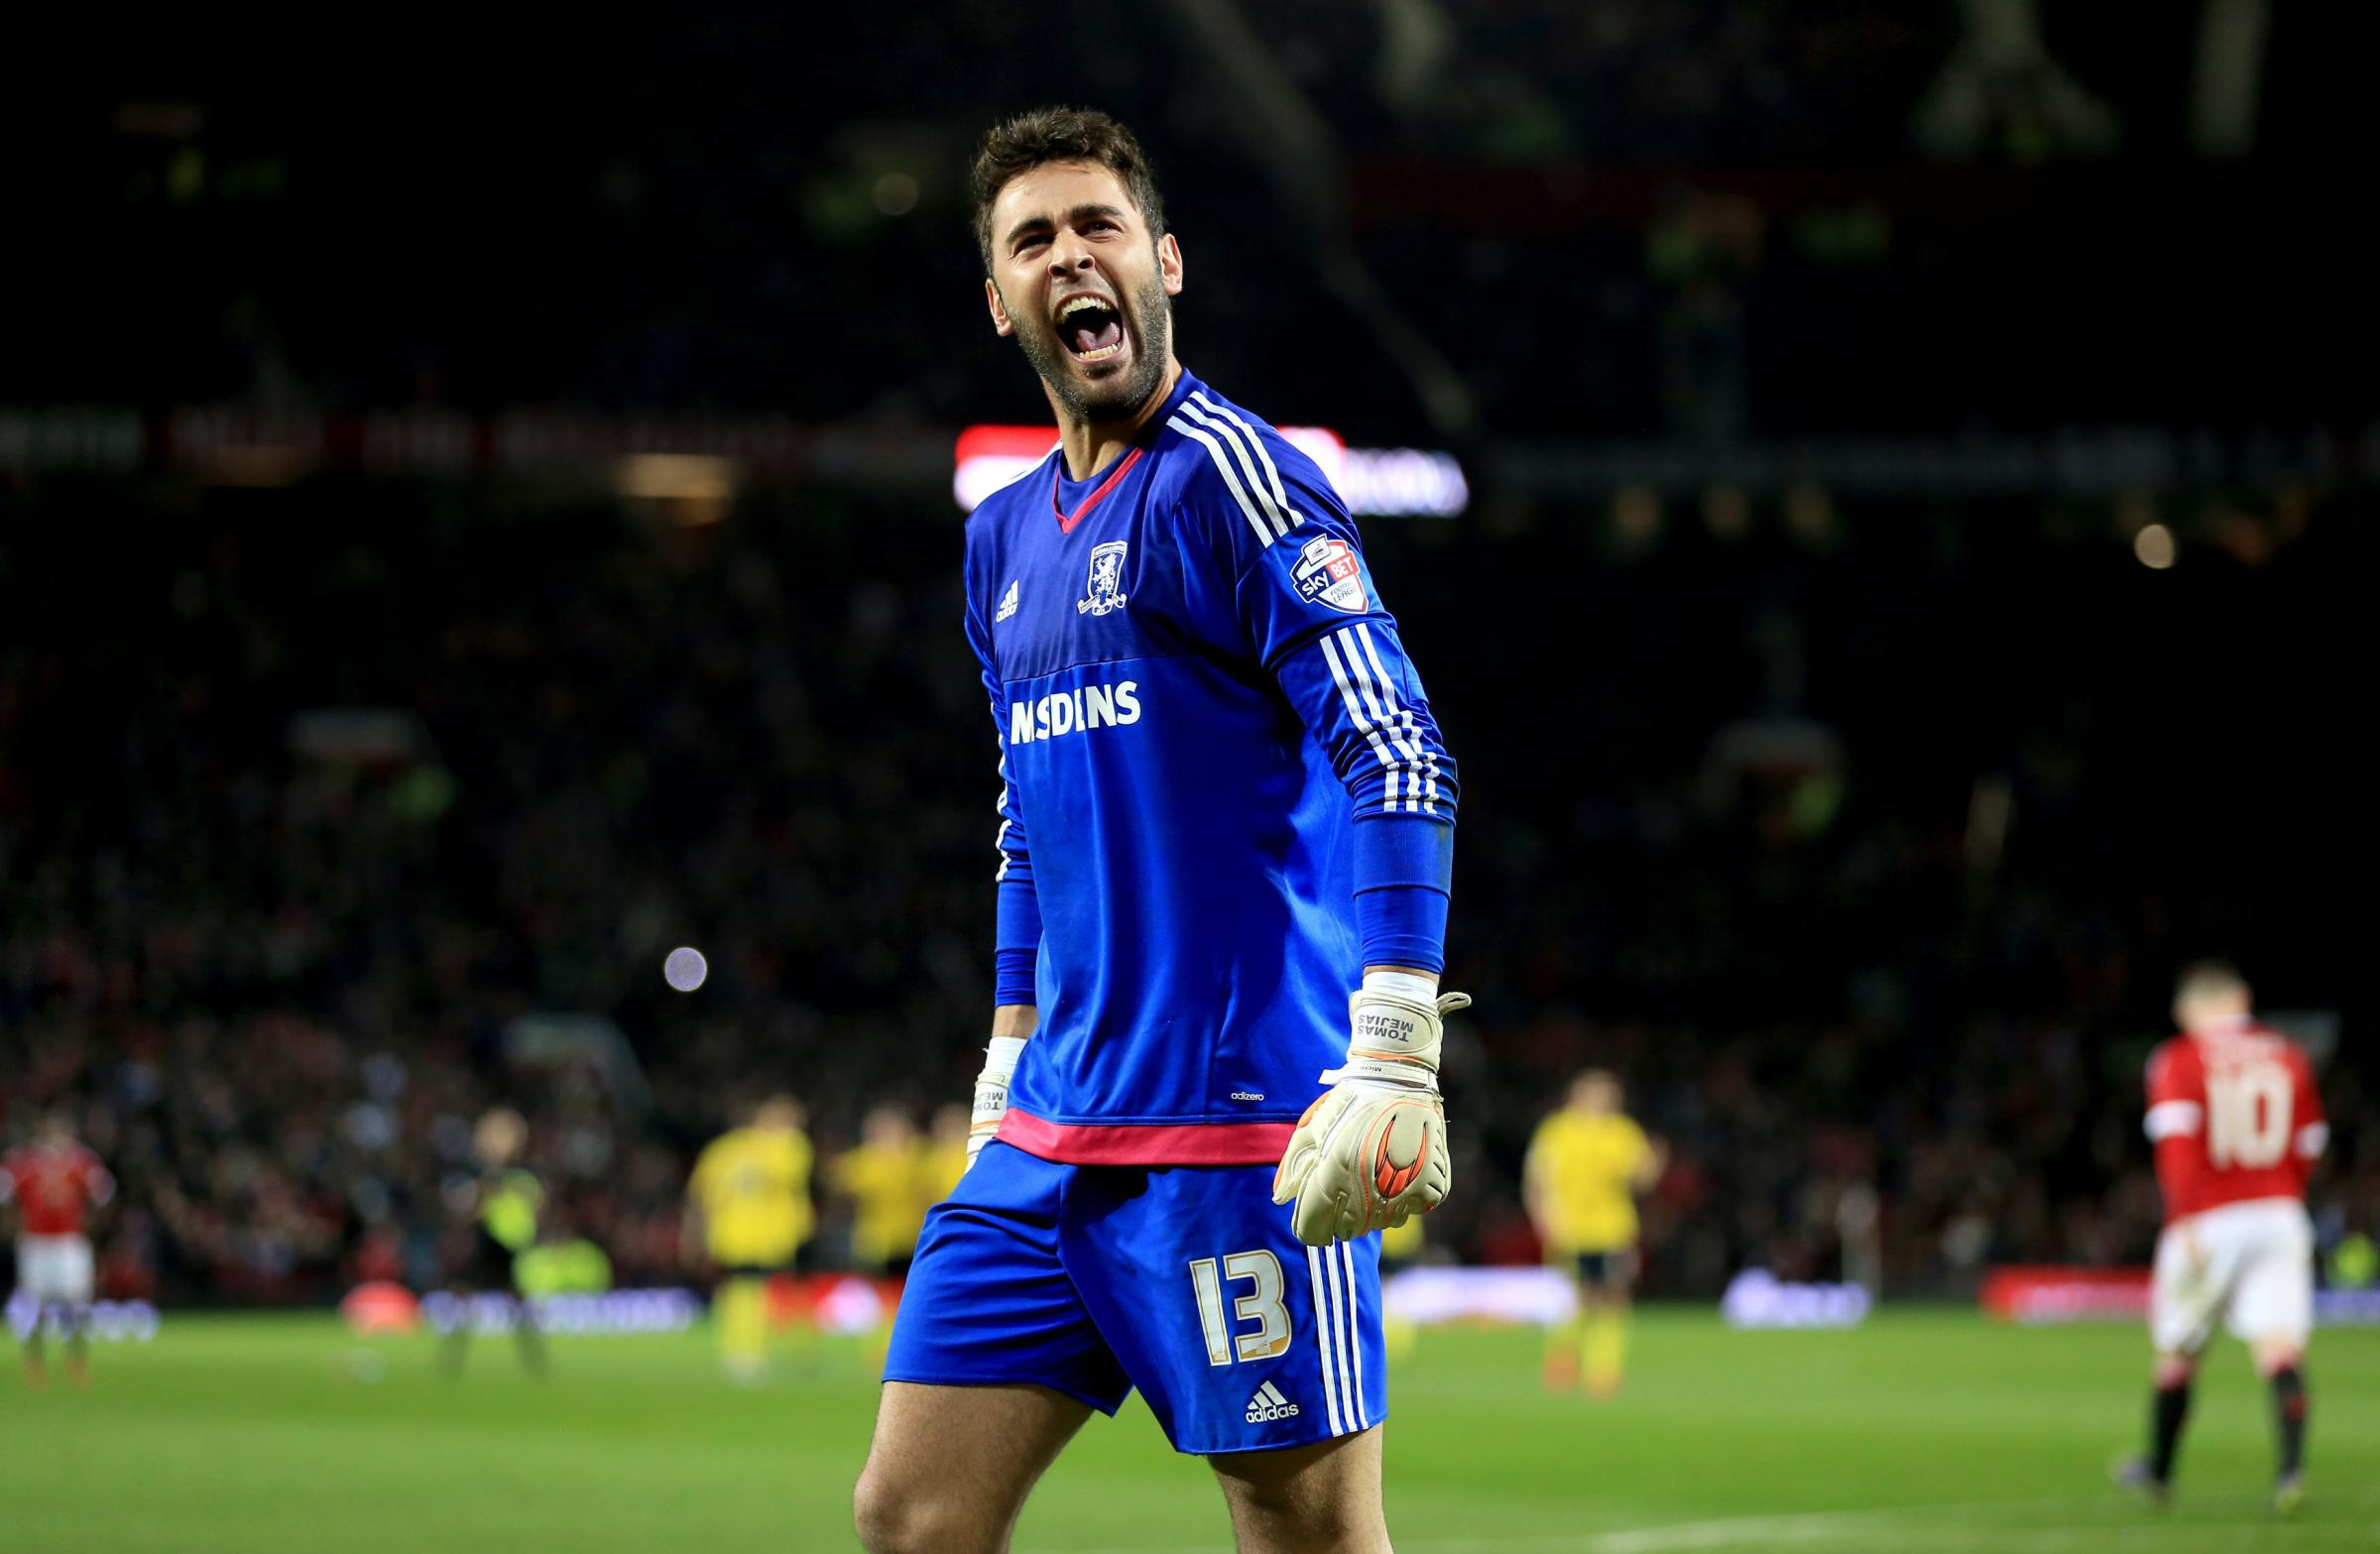 ON HIS WAY OUT: Tomas Mejias is leaving Middlesbrough after four-and-a-half years with the club